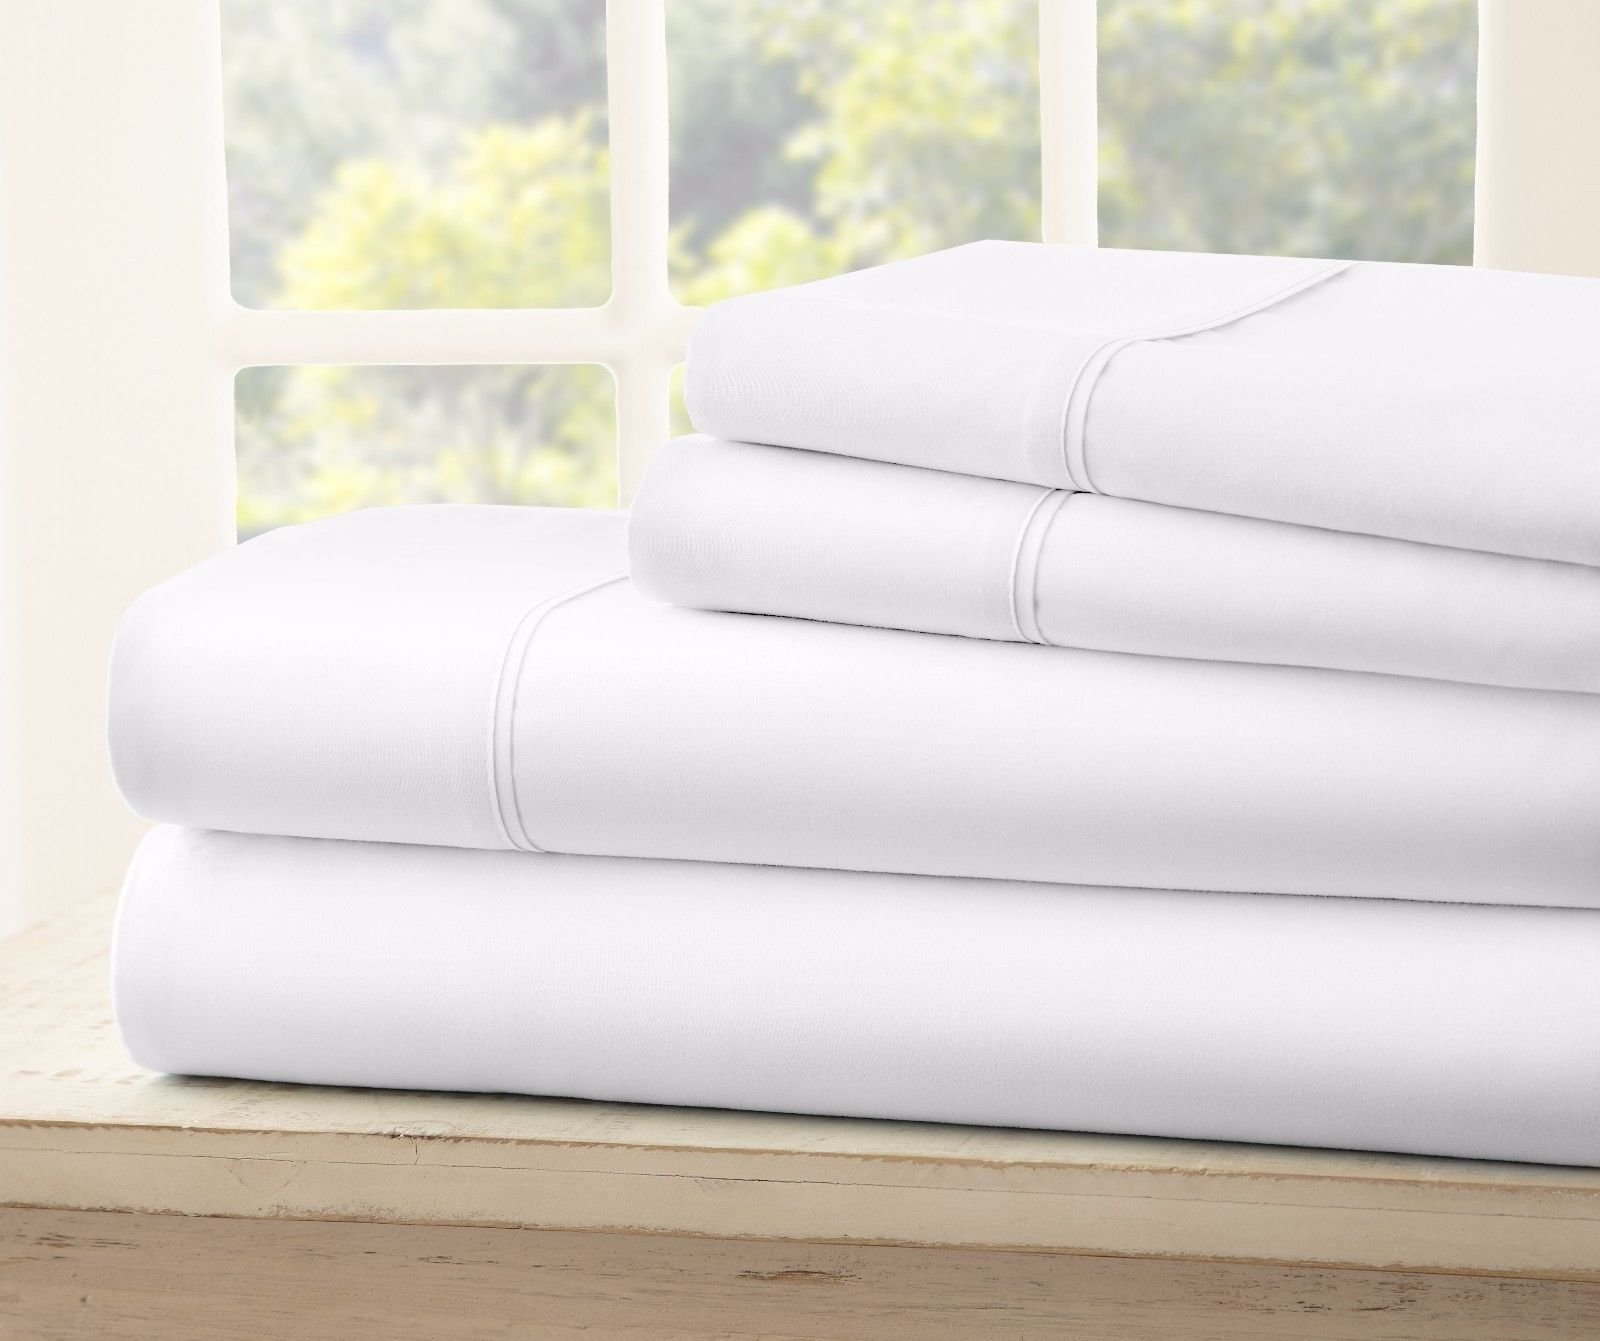 Royal Collection 1900 Split King Count Bamboo Quality Bed Sheet Set With 2 Twin XL Fitted,1 King Flat, 2 King Pillow Cases. Wrinkle Free Shrinkage Free, Deep Pockets (Split King, White)